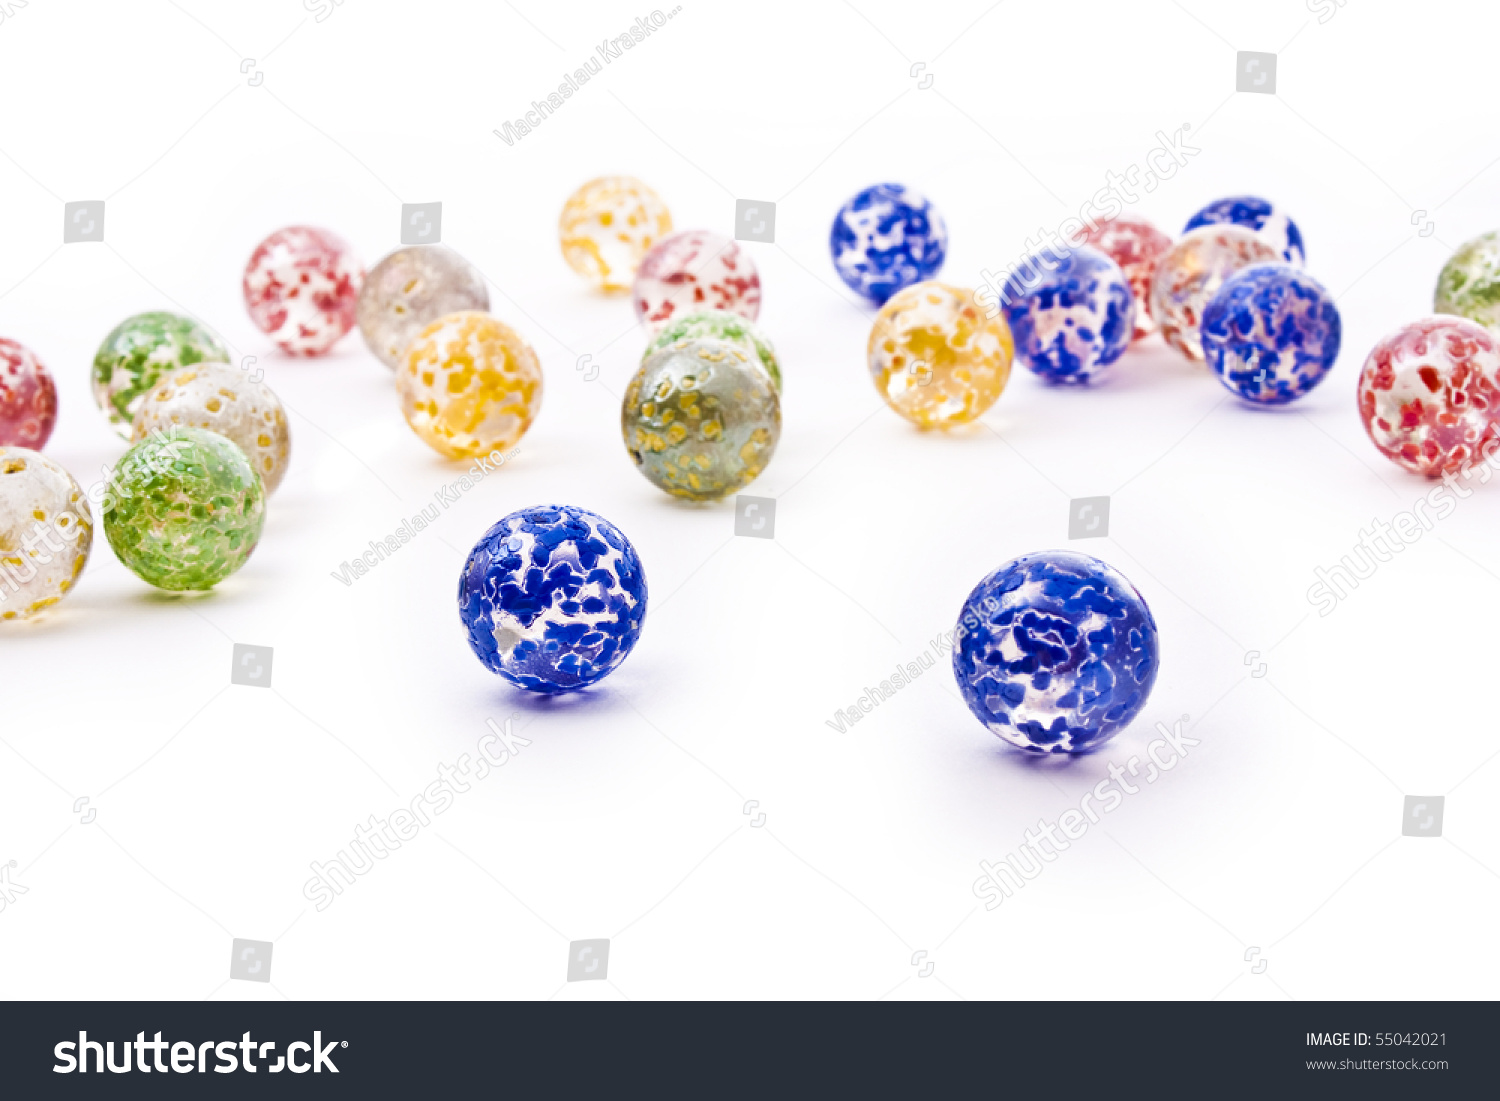 drink decor decorative blue balls of bottle image against with a glass bottom stock background the lie water on